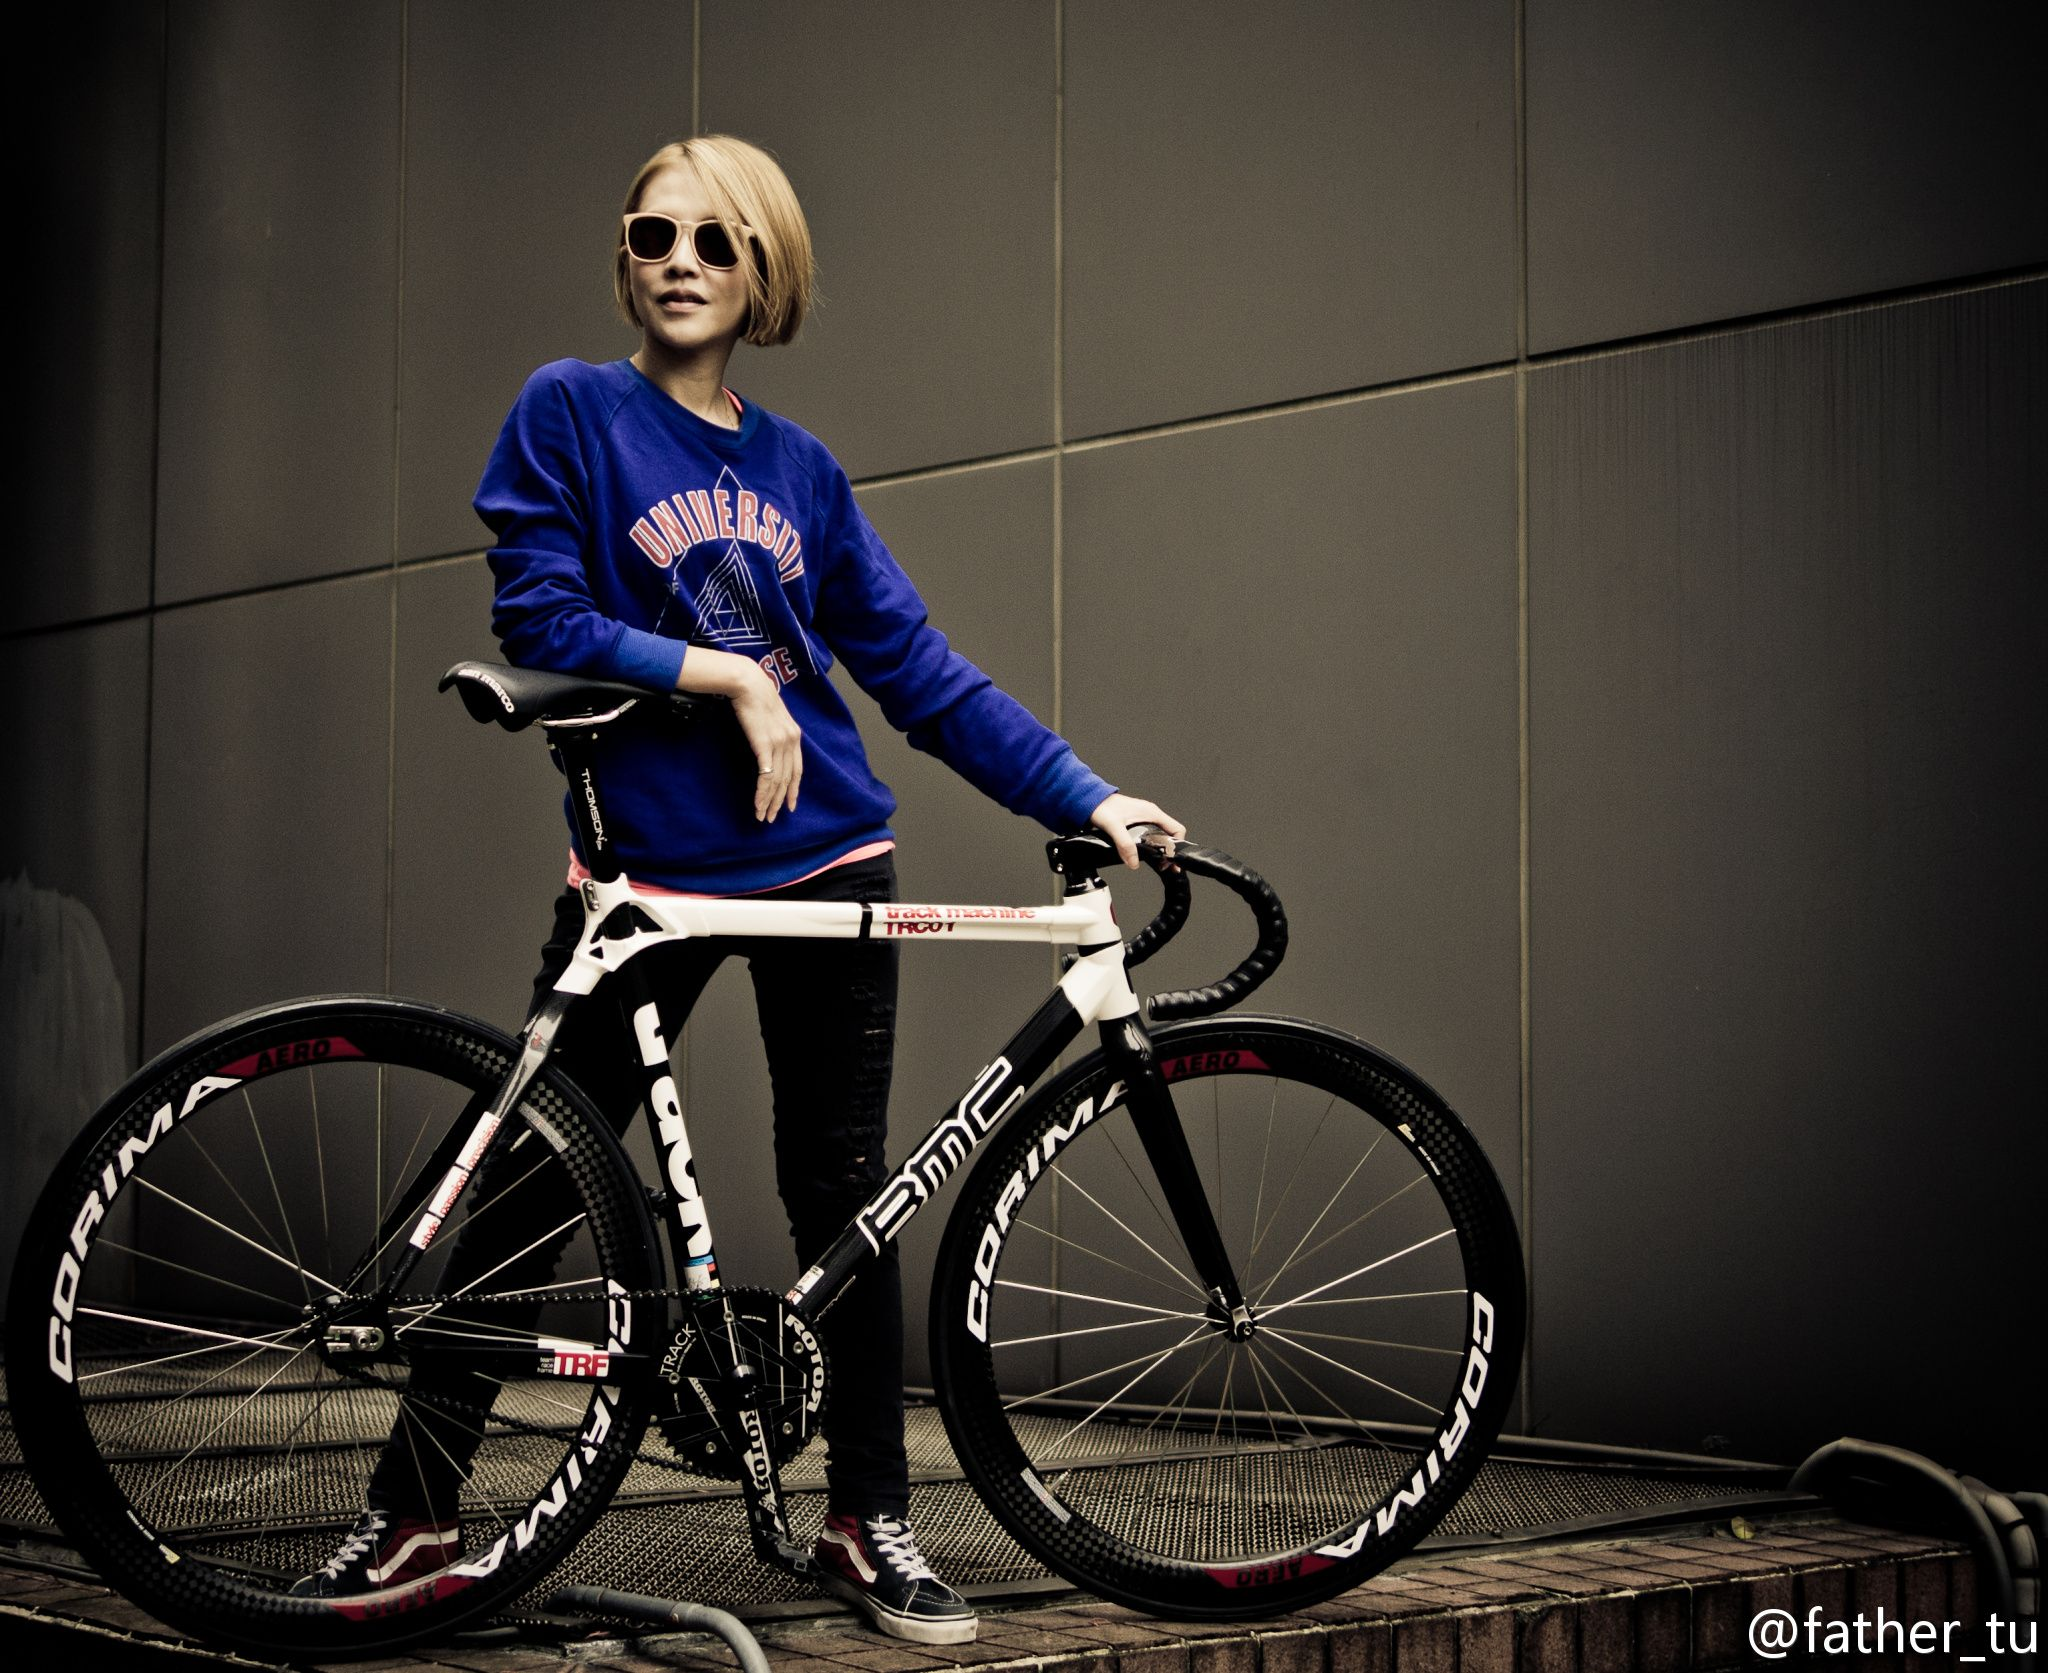 wallpaper fixie